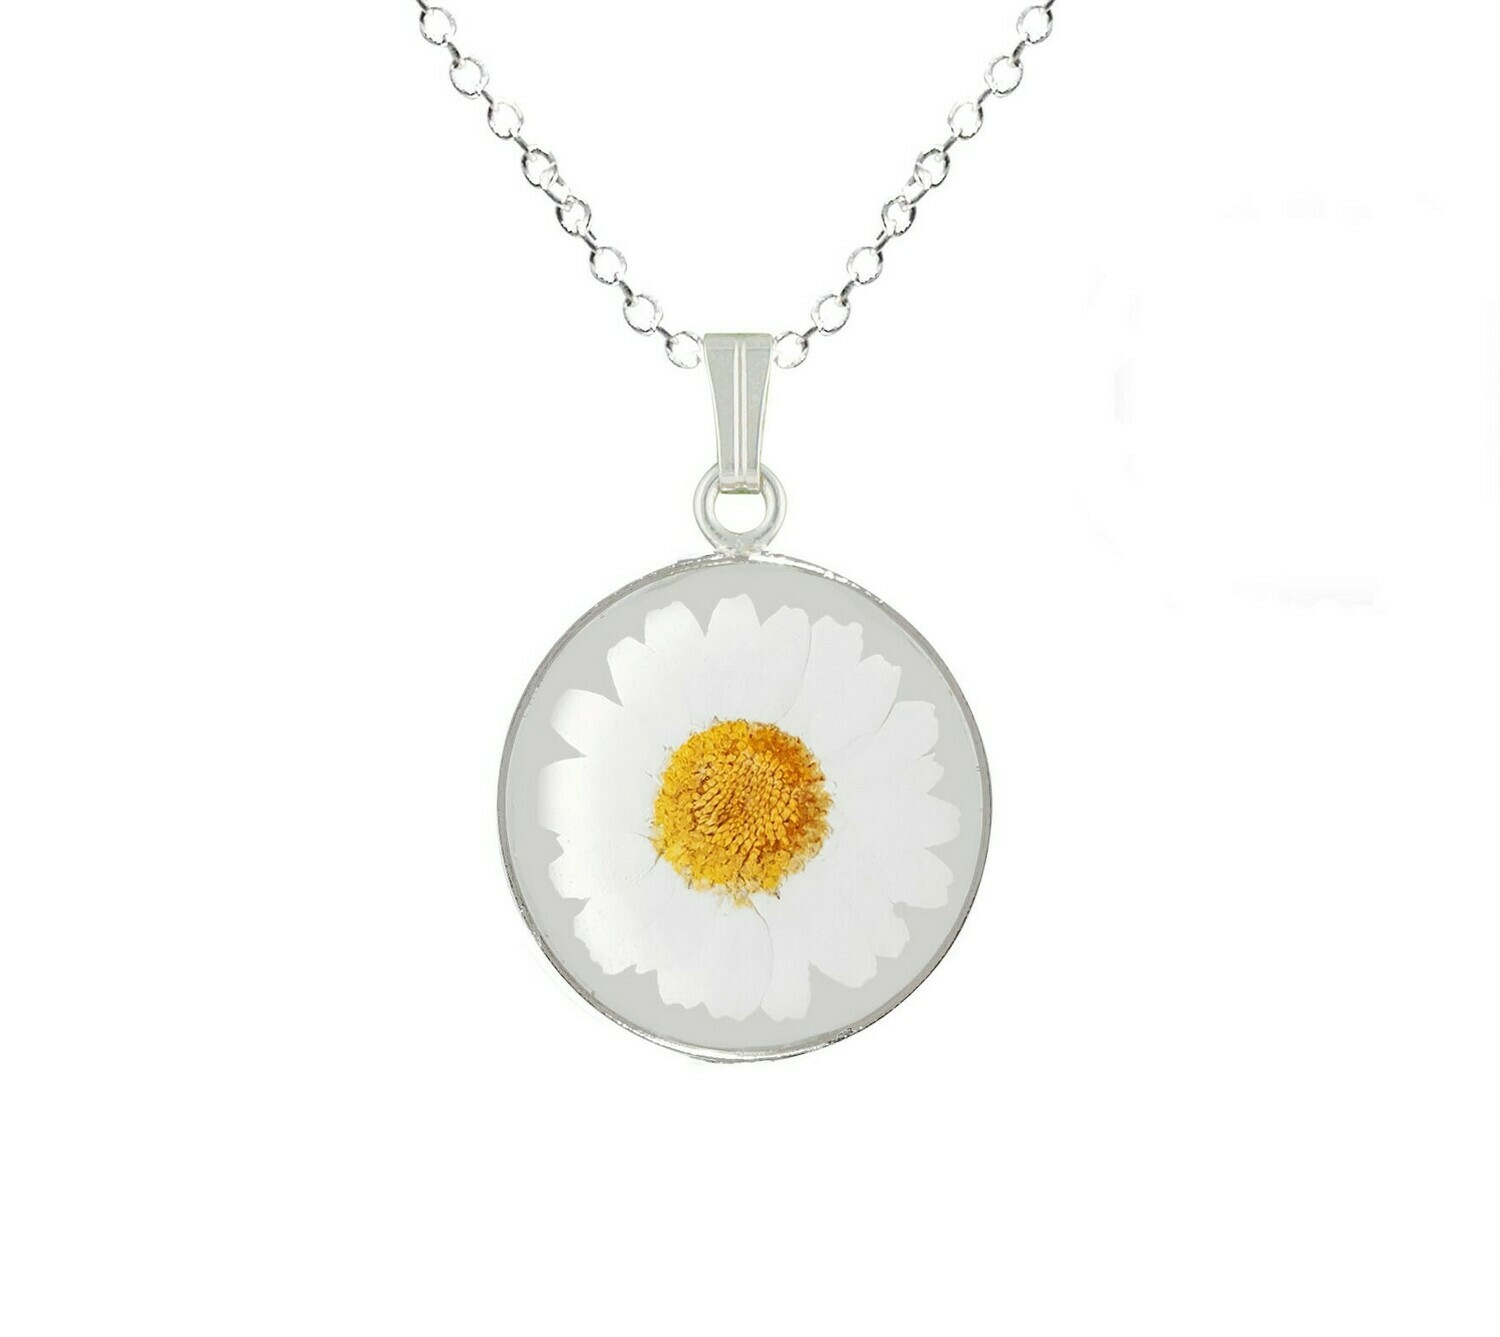 Daisy Necklace, Medium Circle, Transparent